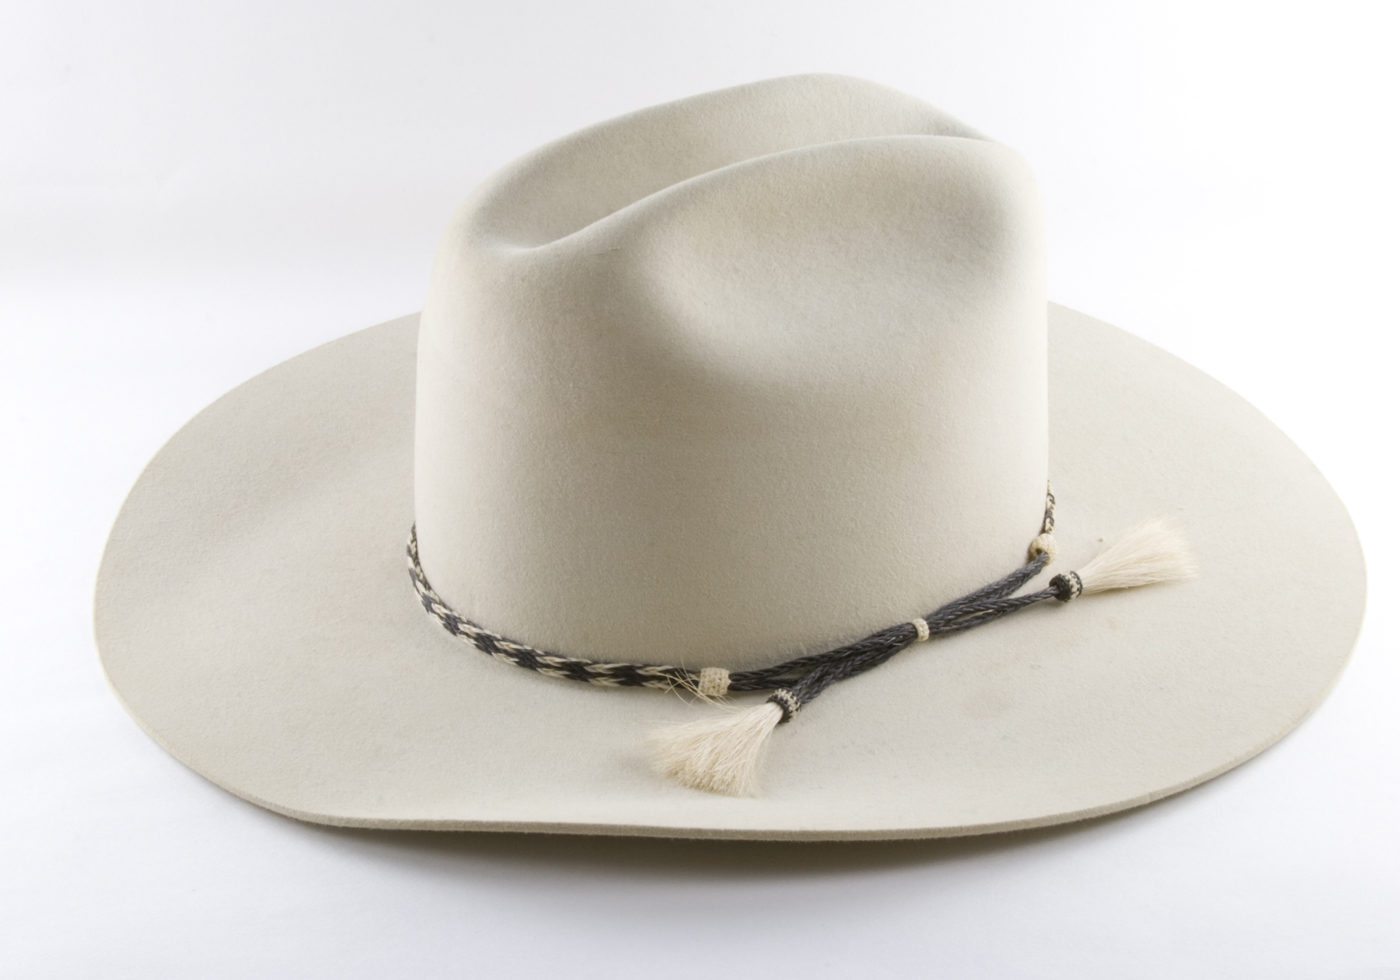 42e8afb31ded5 Cowboy hat - Wikipedia